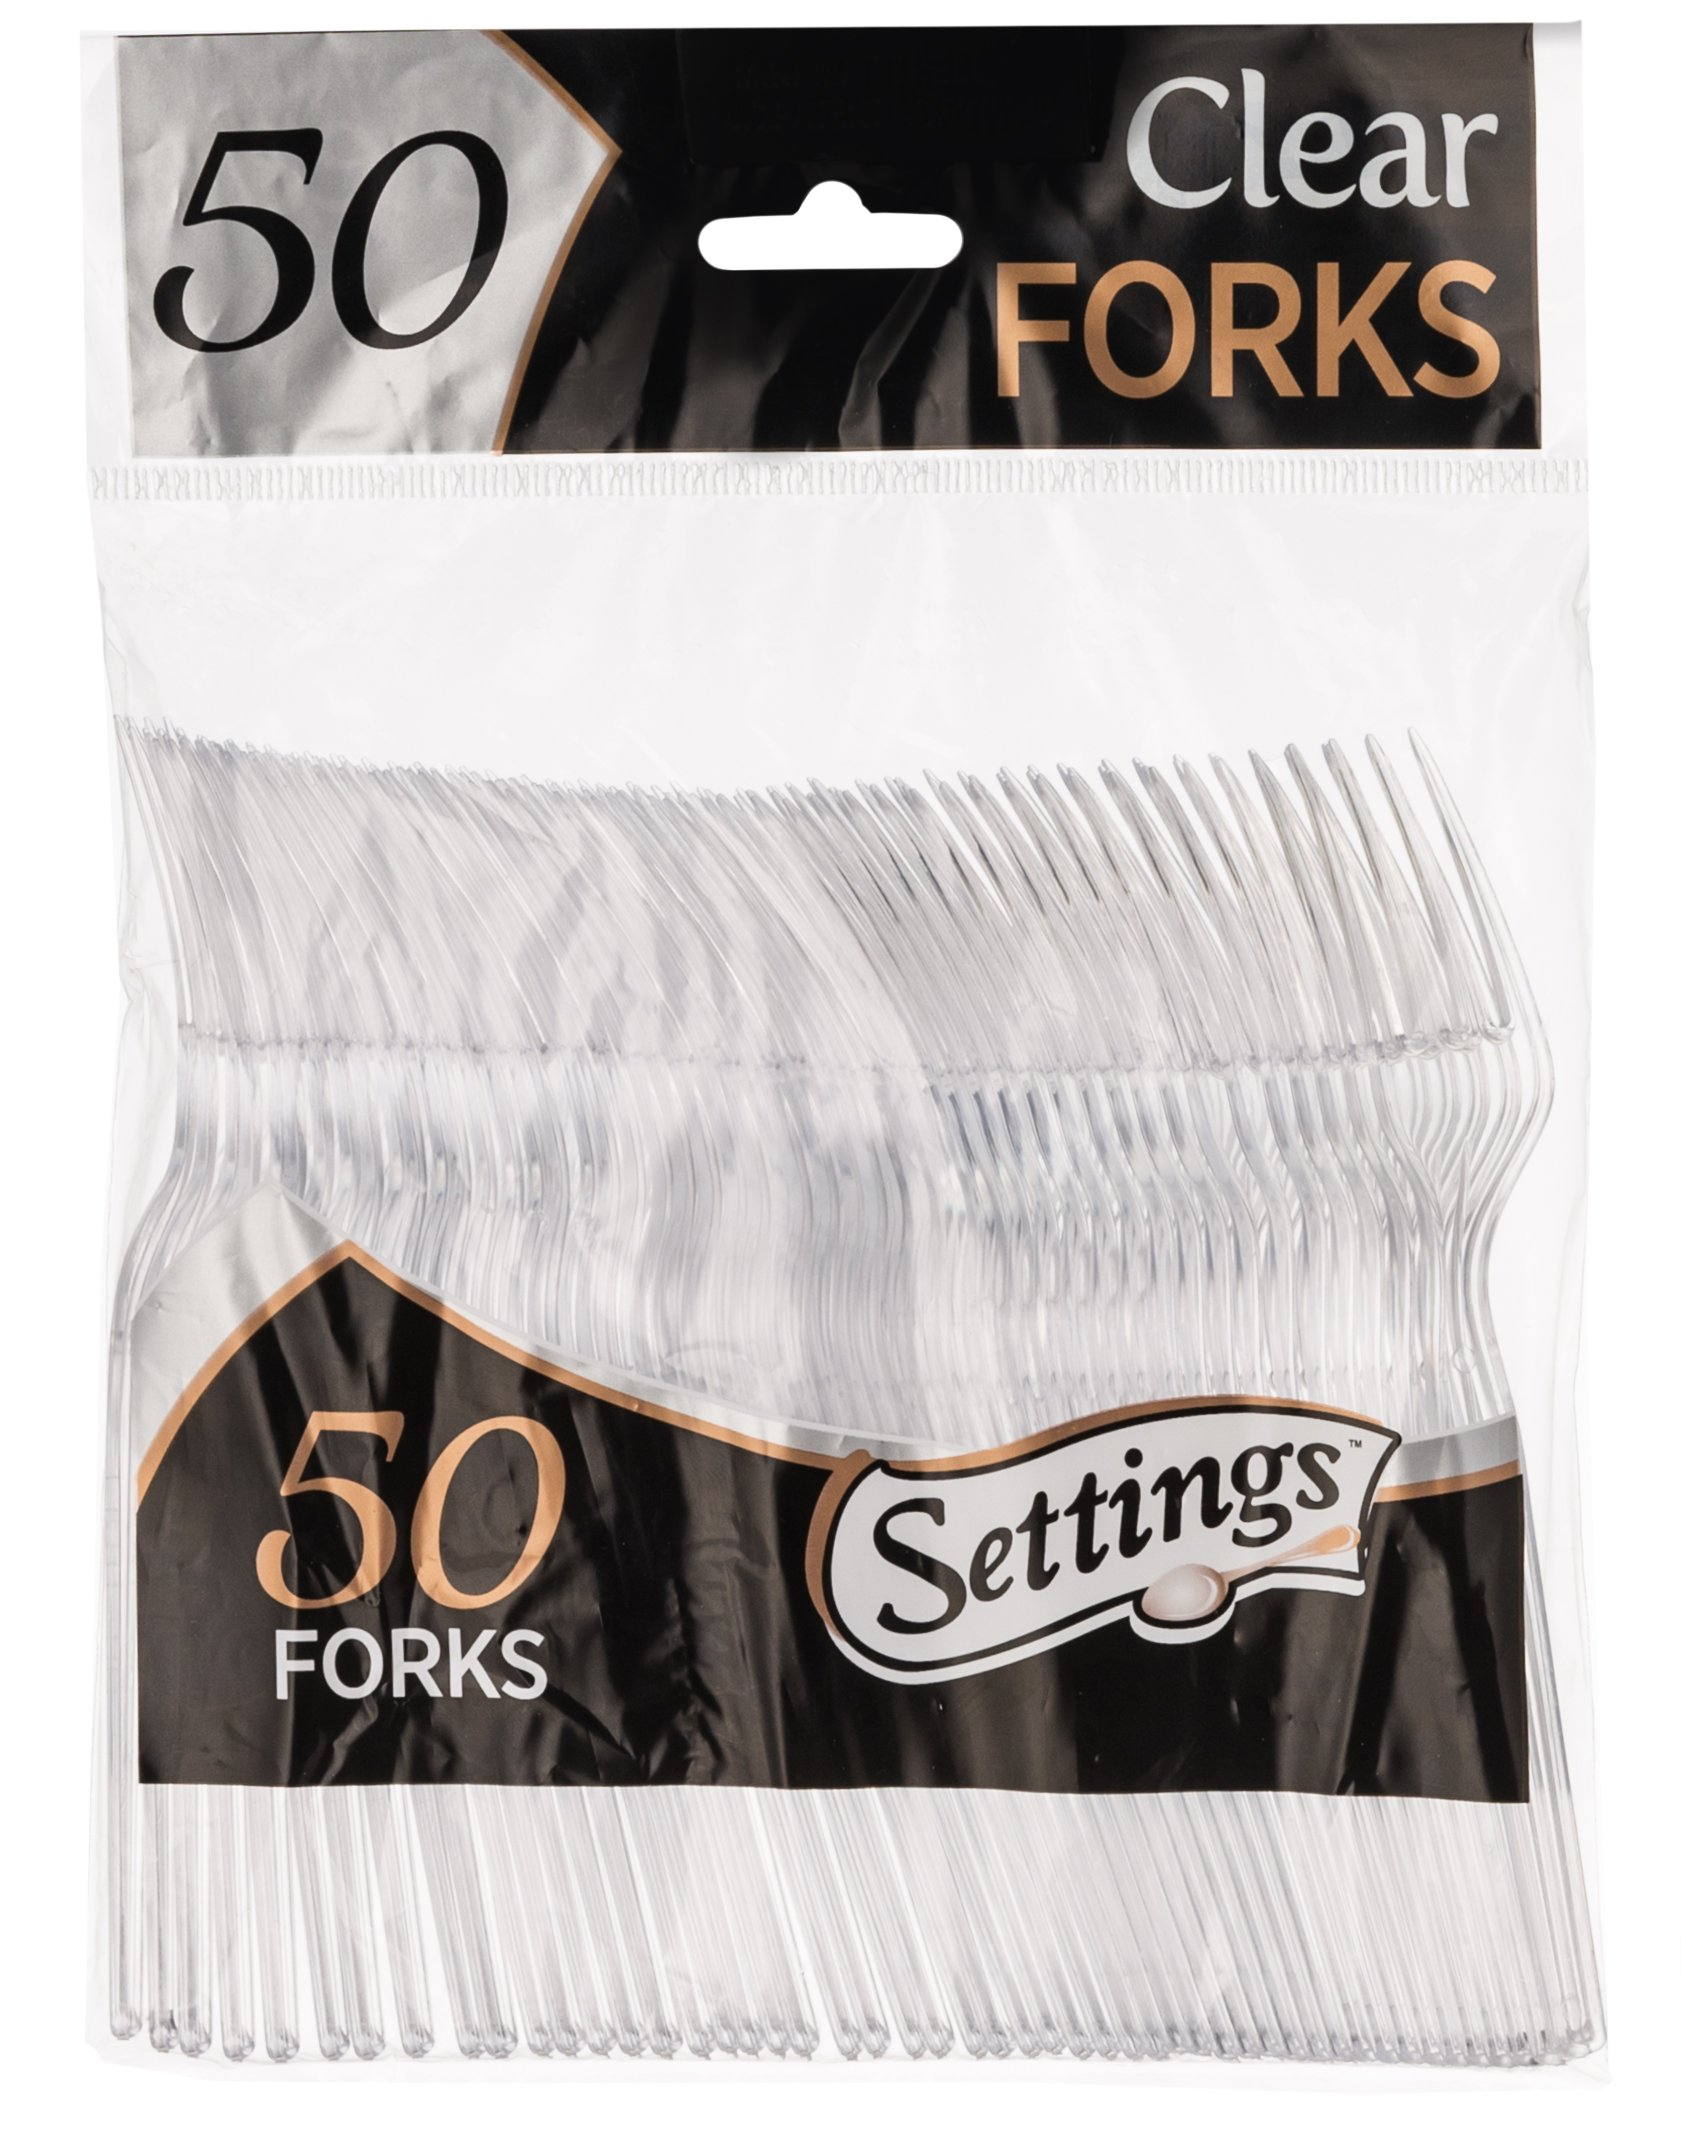 [200 Count] Settings Plastic Clear Forks, Heavyweight Disposable Cutlery, Great For Home, Office, School, Party, Picnics, Restaurant, Take-out Fast Food, Outdoor Events, Or Every Day Use, 4 Bags by Settings